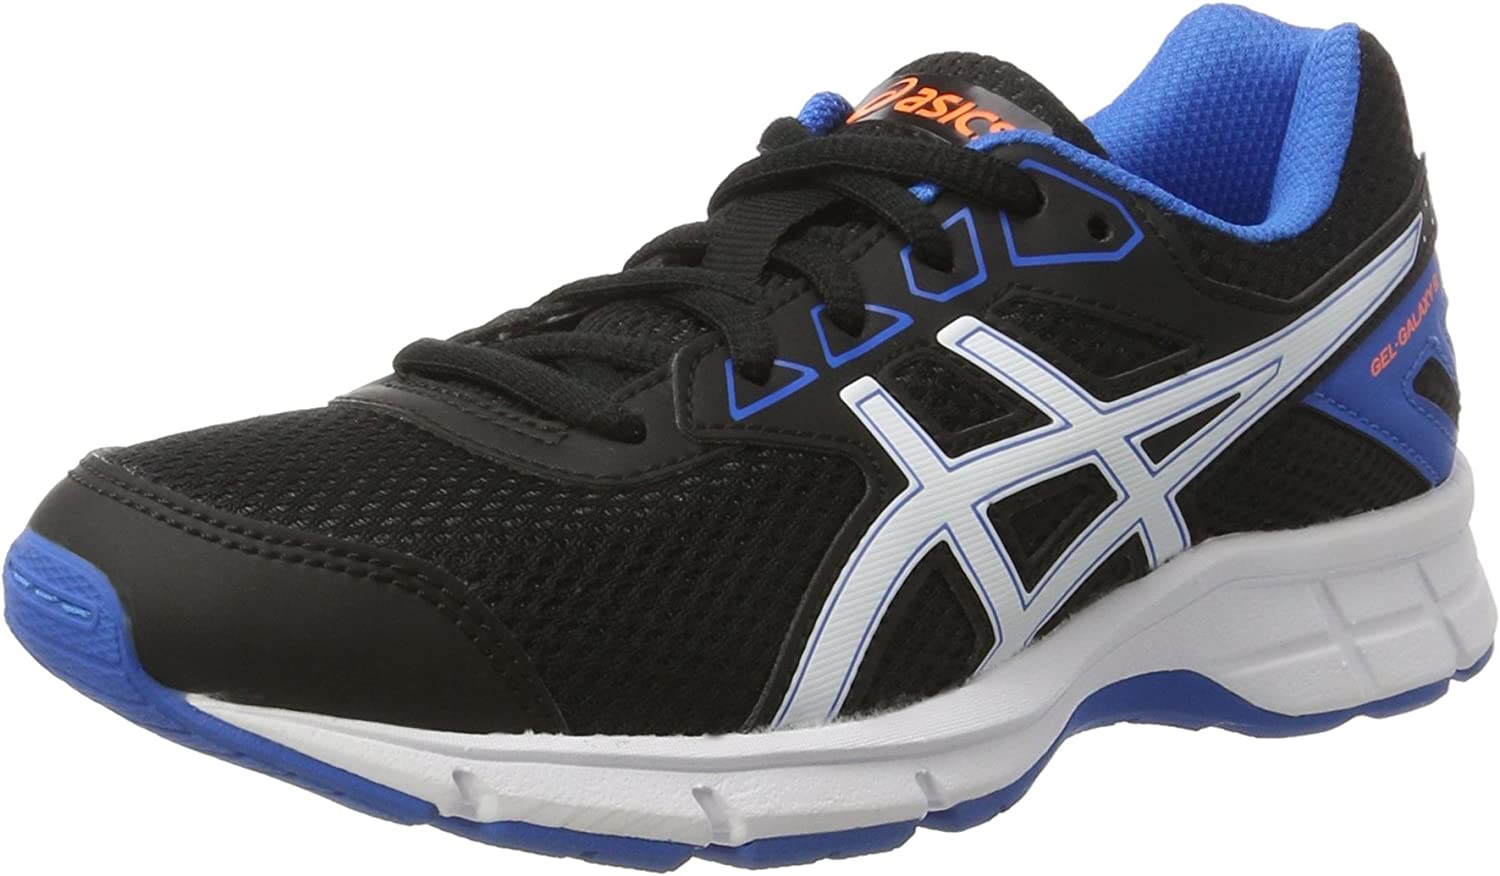 Asics Gel-Galaxy 9 GS, Zapatillas de Deporte Infantil, Negro (Black/White/Electric Blue), 34.5 EU: Amazon.es: Zapatos y complementos